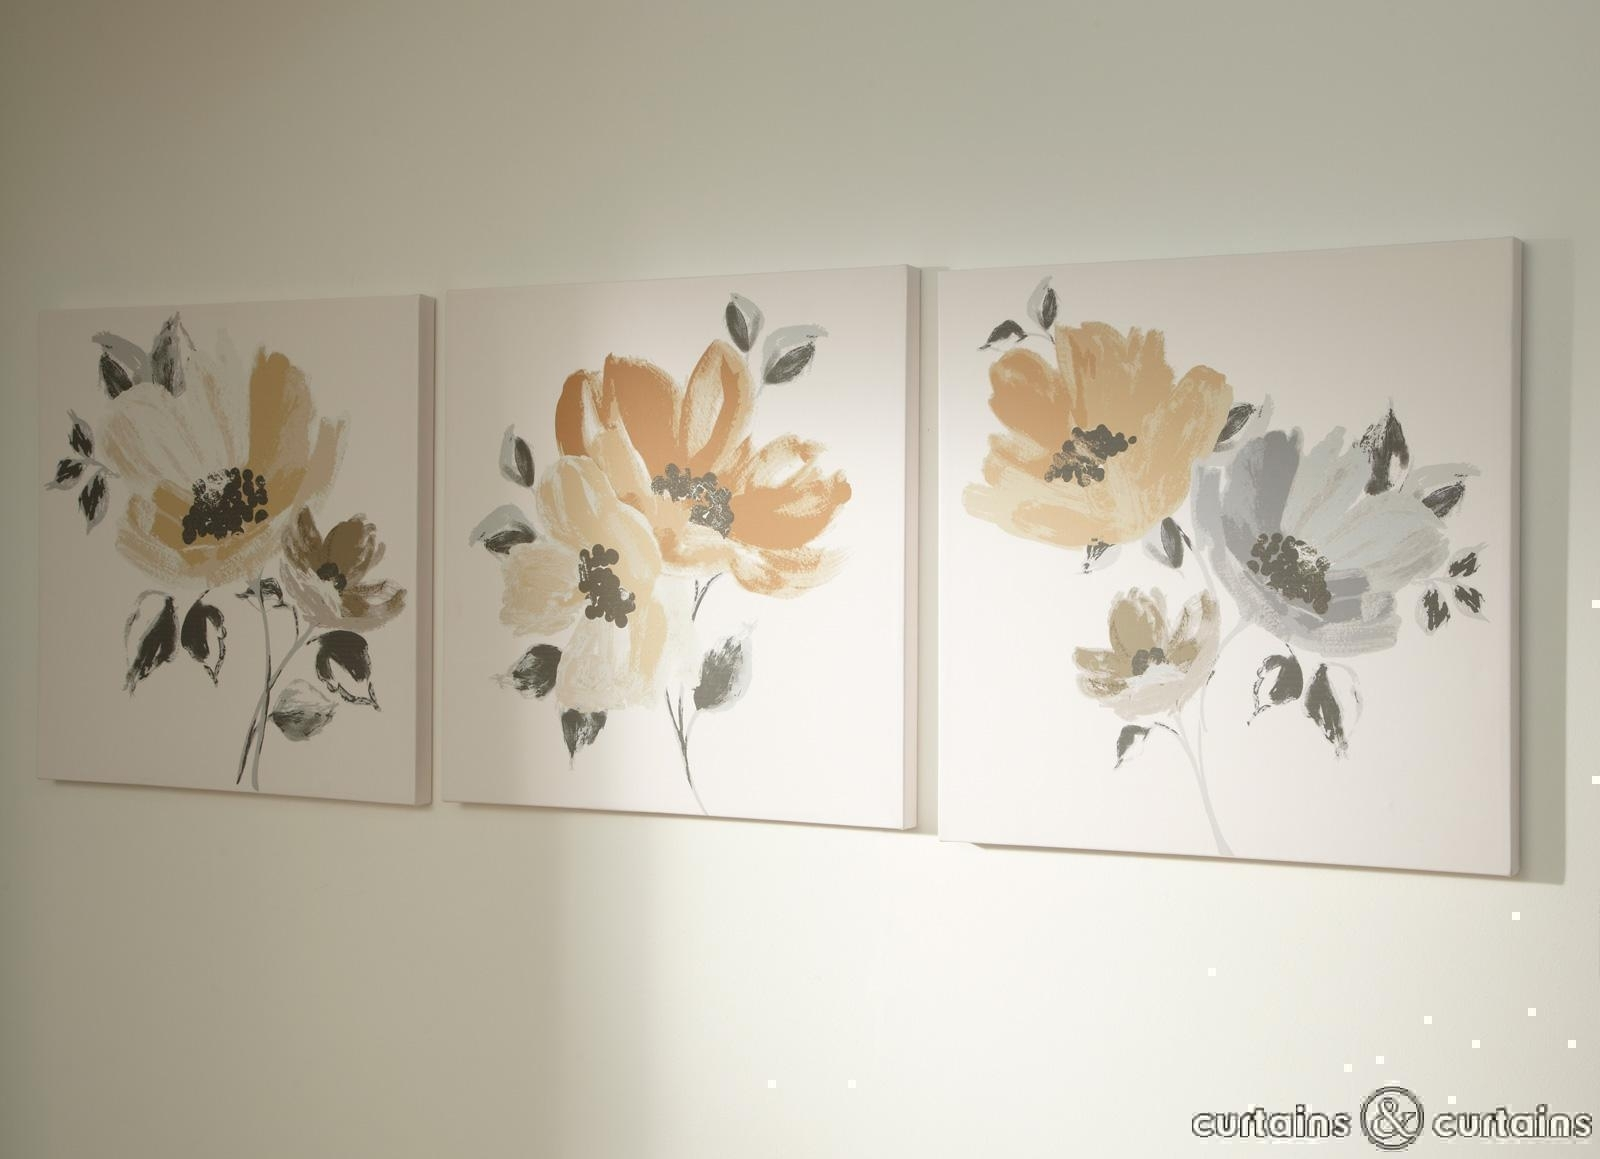 Wall Art: Top Ten Gallery Floral Canvas Wall Art Floral Posters Inside Newest Canvas Wall Art Of Flowers (View 15 of 15)